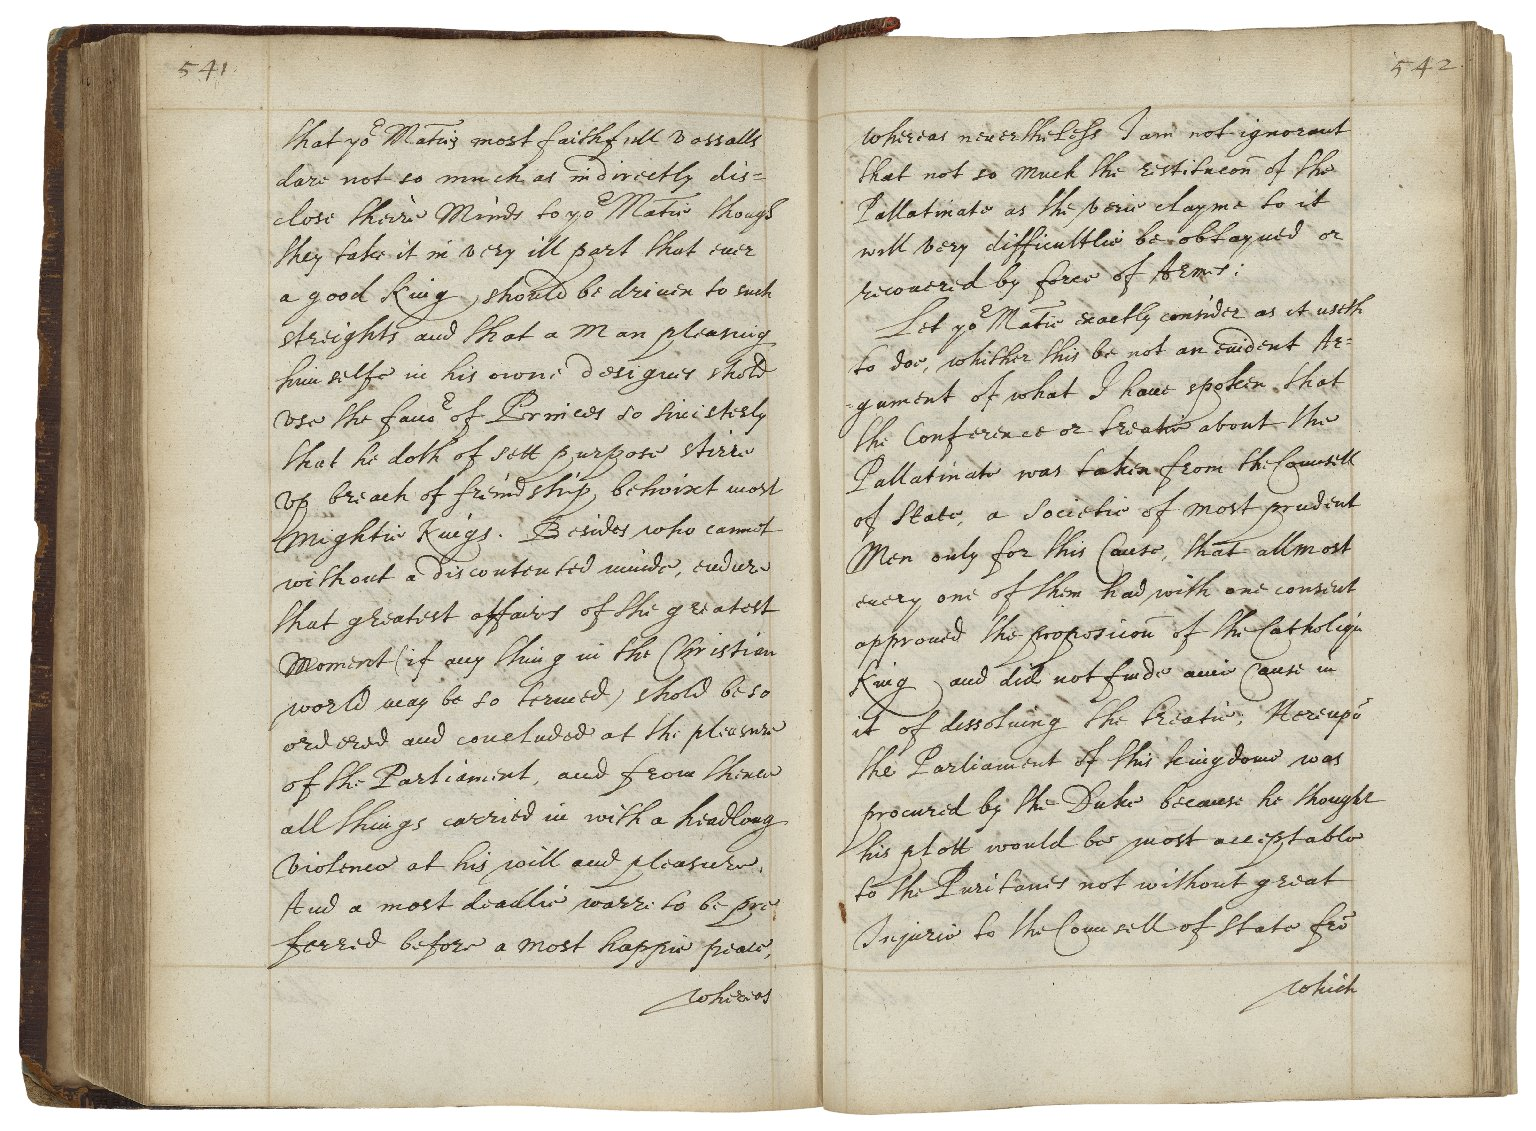 State letters from 1533 to ca. 1630 [manuscript], copied ca. 1650.